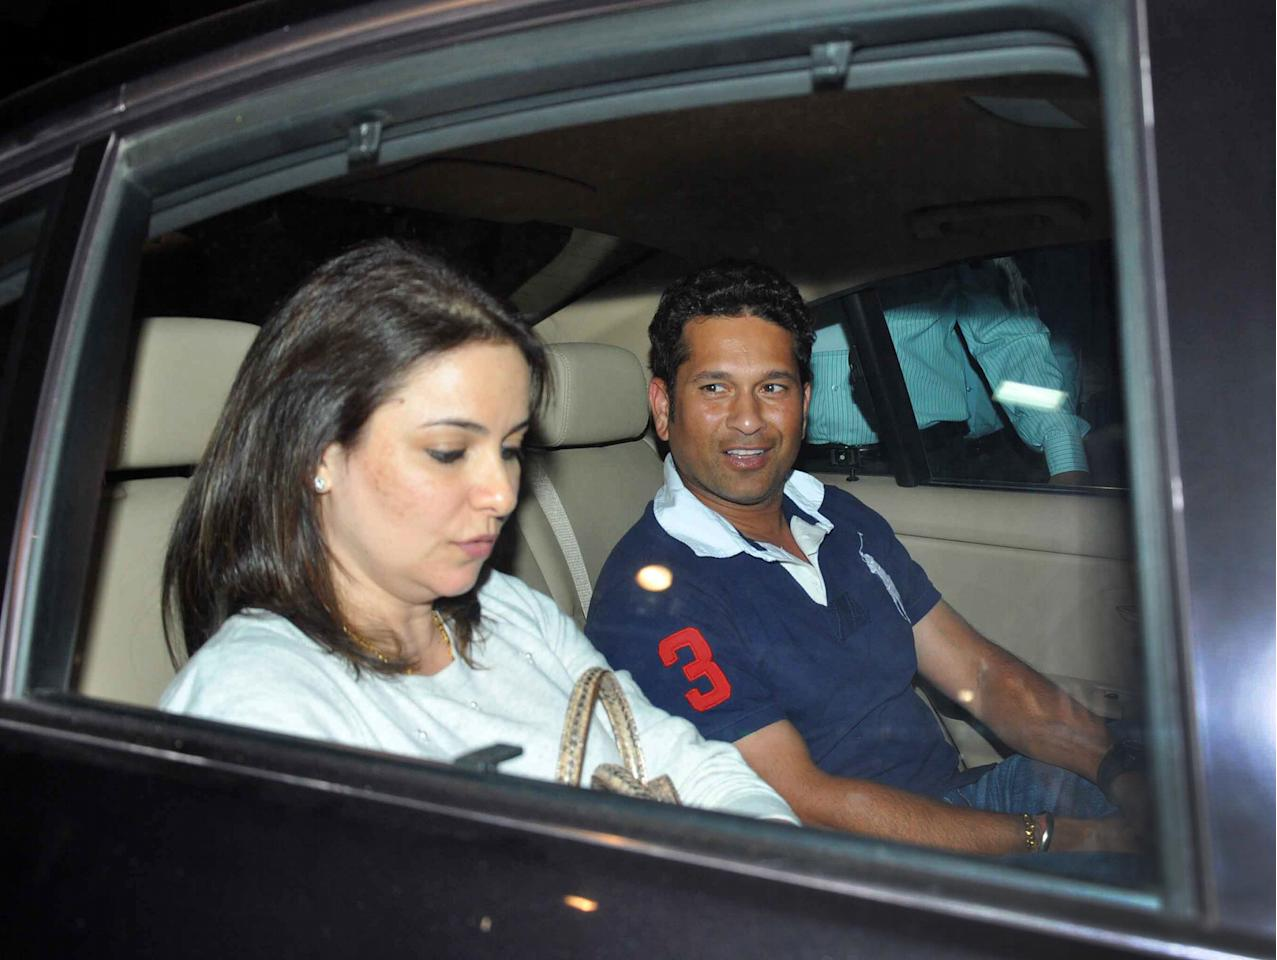 In this photograph taken on October 30, 2013, Indian cricketer Sachin Tendulkar (R) and his wife Anjali Tendulkar sit in a vehicle as they leave an airport in Jodhpur, after arriving to attend socialite Nita Ambani's 50th birthday celebrations. AFP PHOTO/STR        (Photo credit should read STRDEL/AFP/Getty Images)